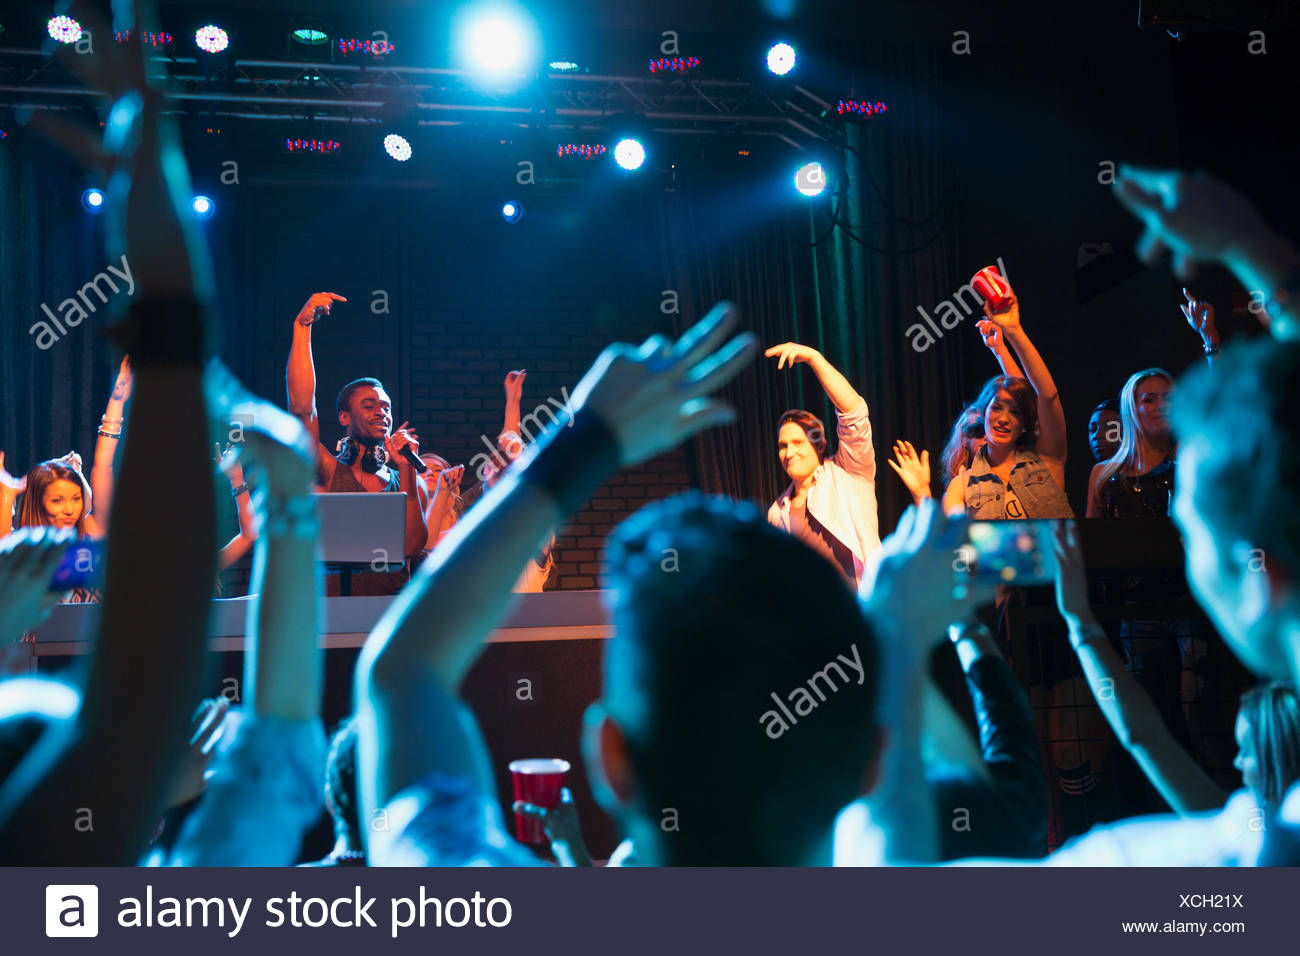 Crowd cheering for musical performers on stage - Stock Image